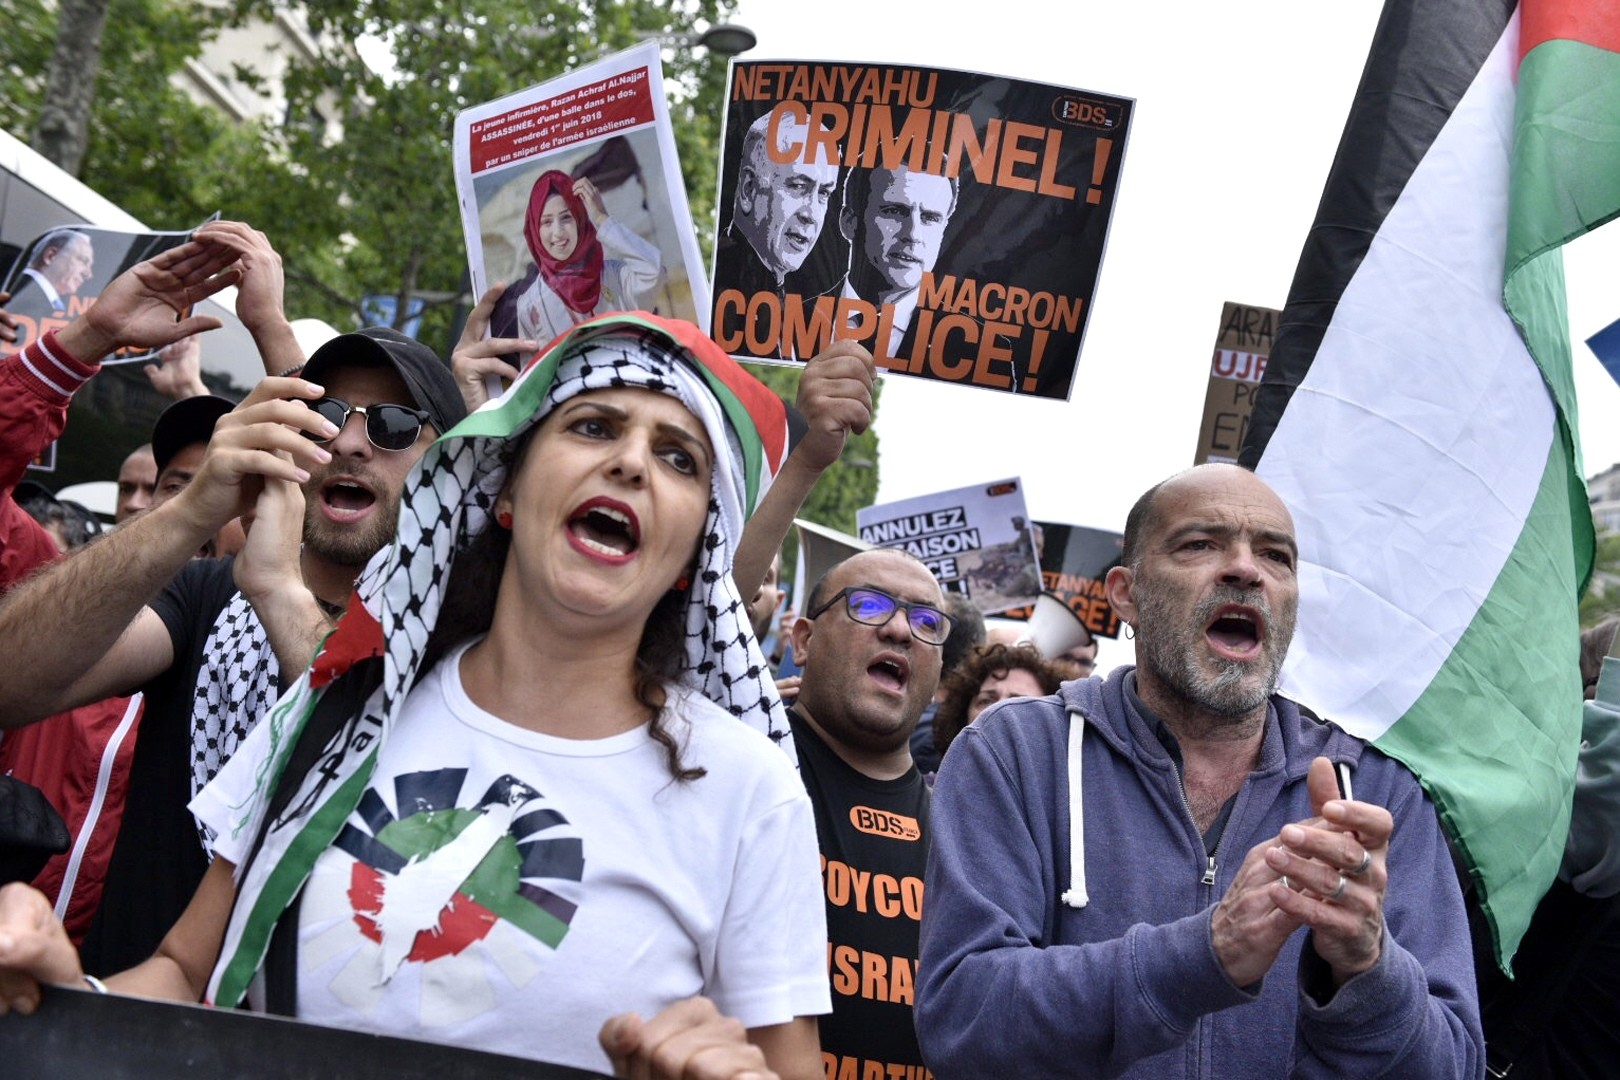 Protesters shout slogans against Netanyahu during a rally on the Champs Elysees avenue in Paris, June 5.